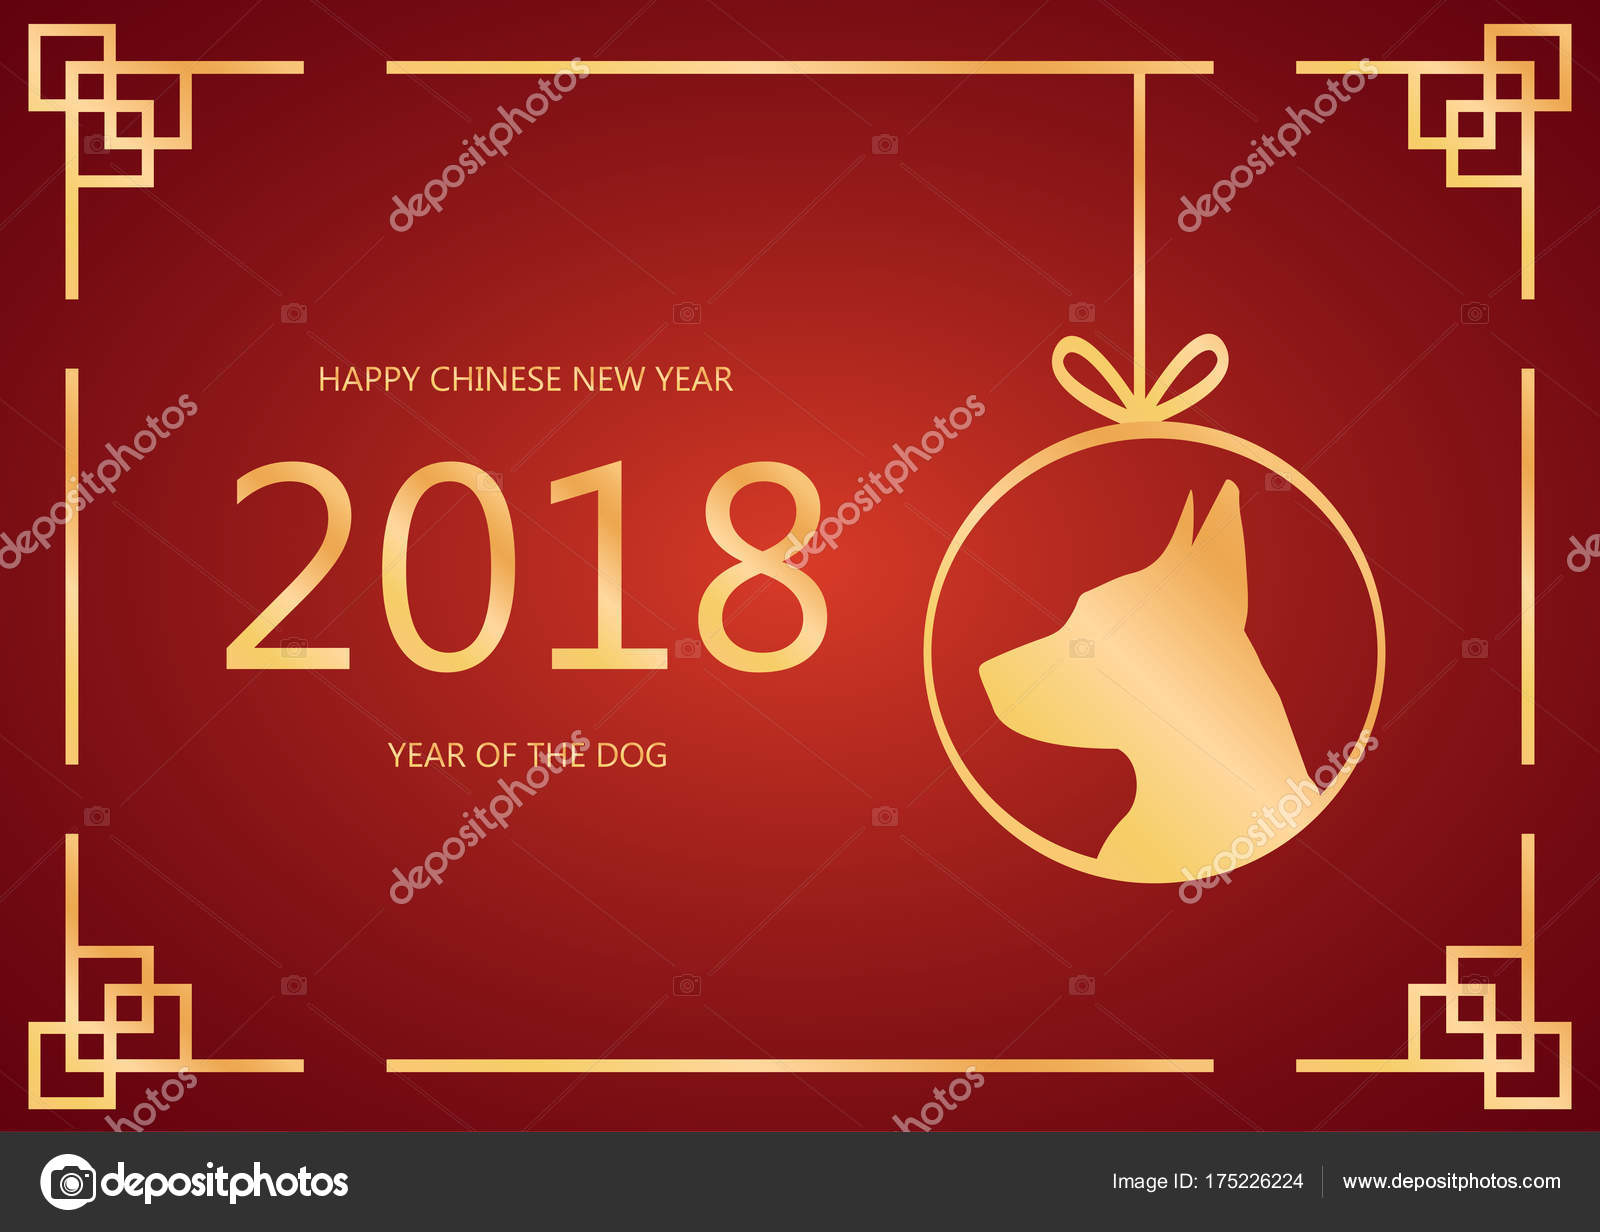 Chinese New Year 2018 Festive Vector Card Design With Dog Zodiac